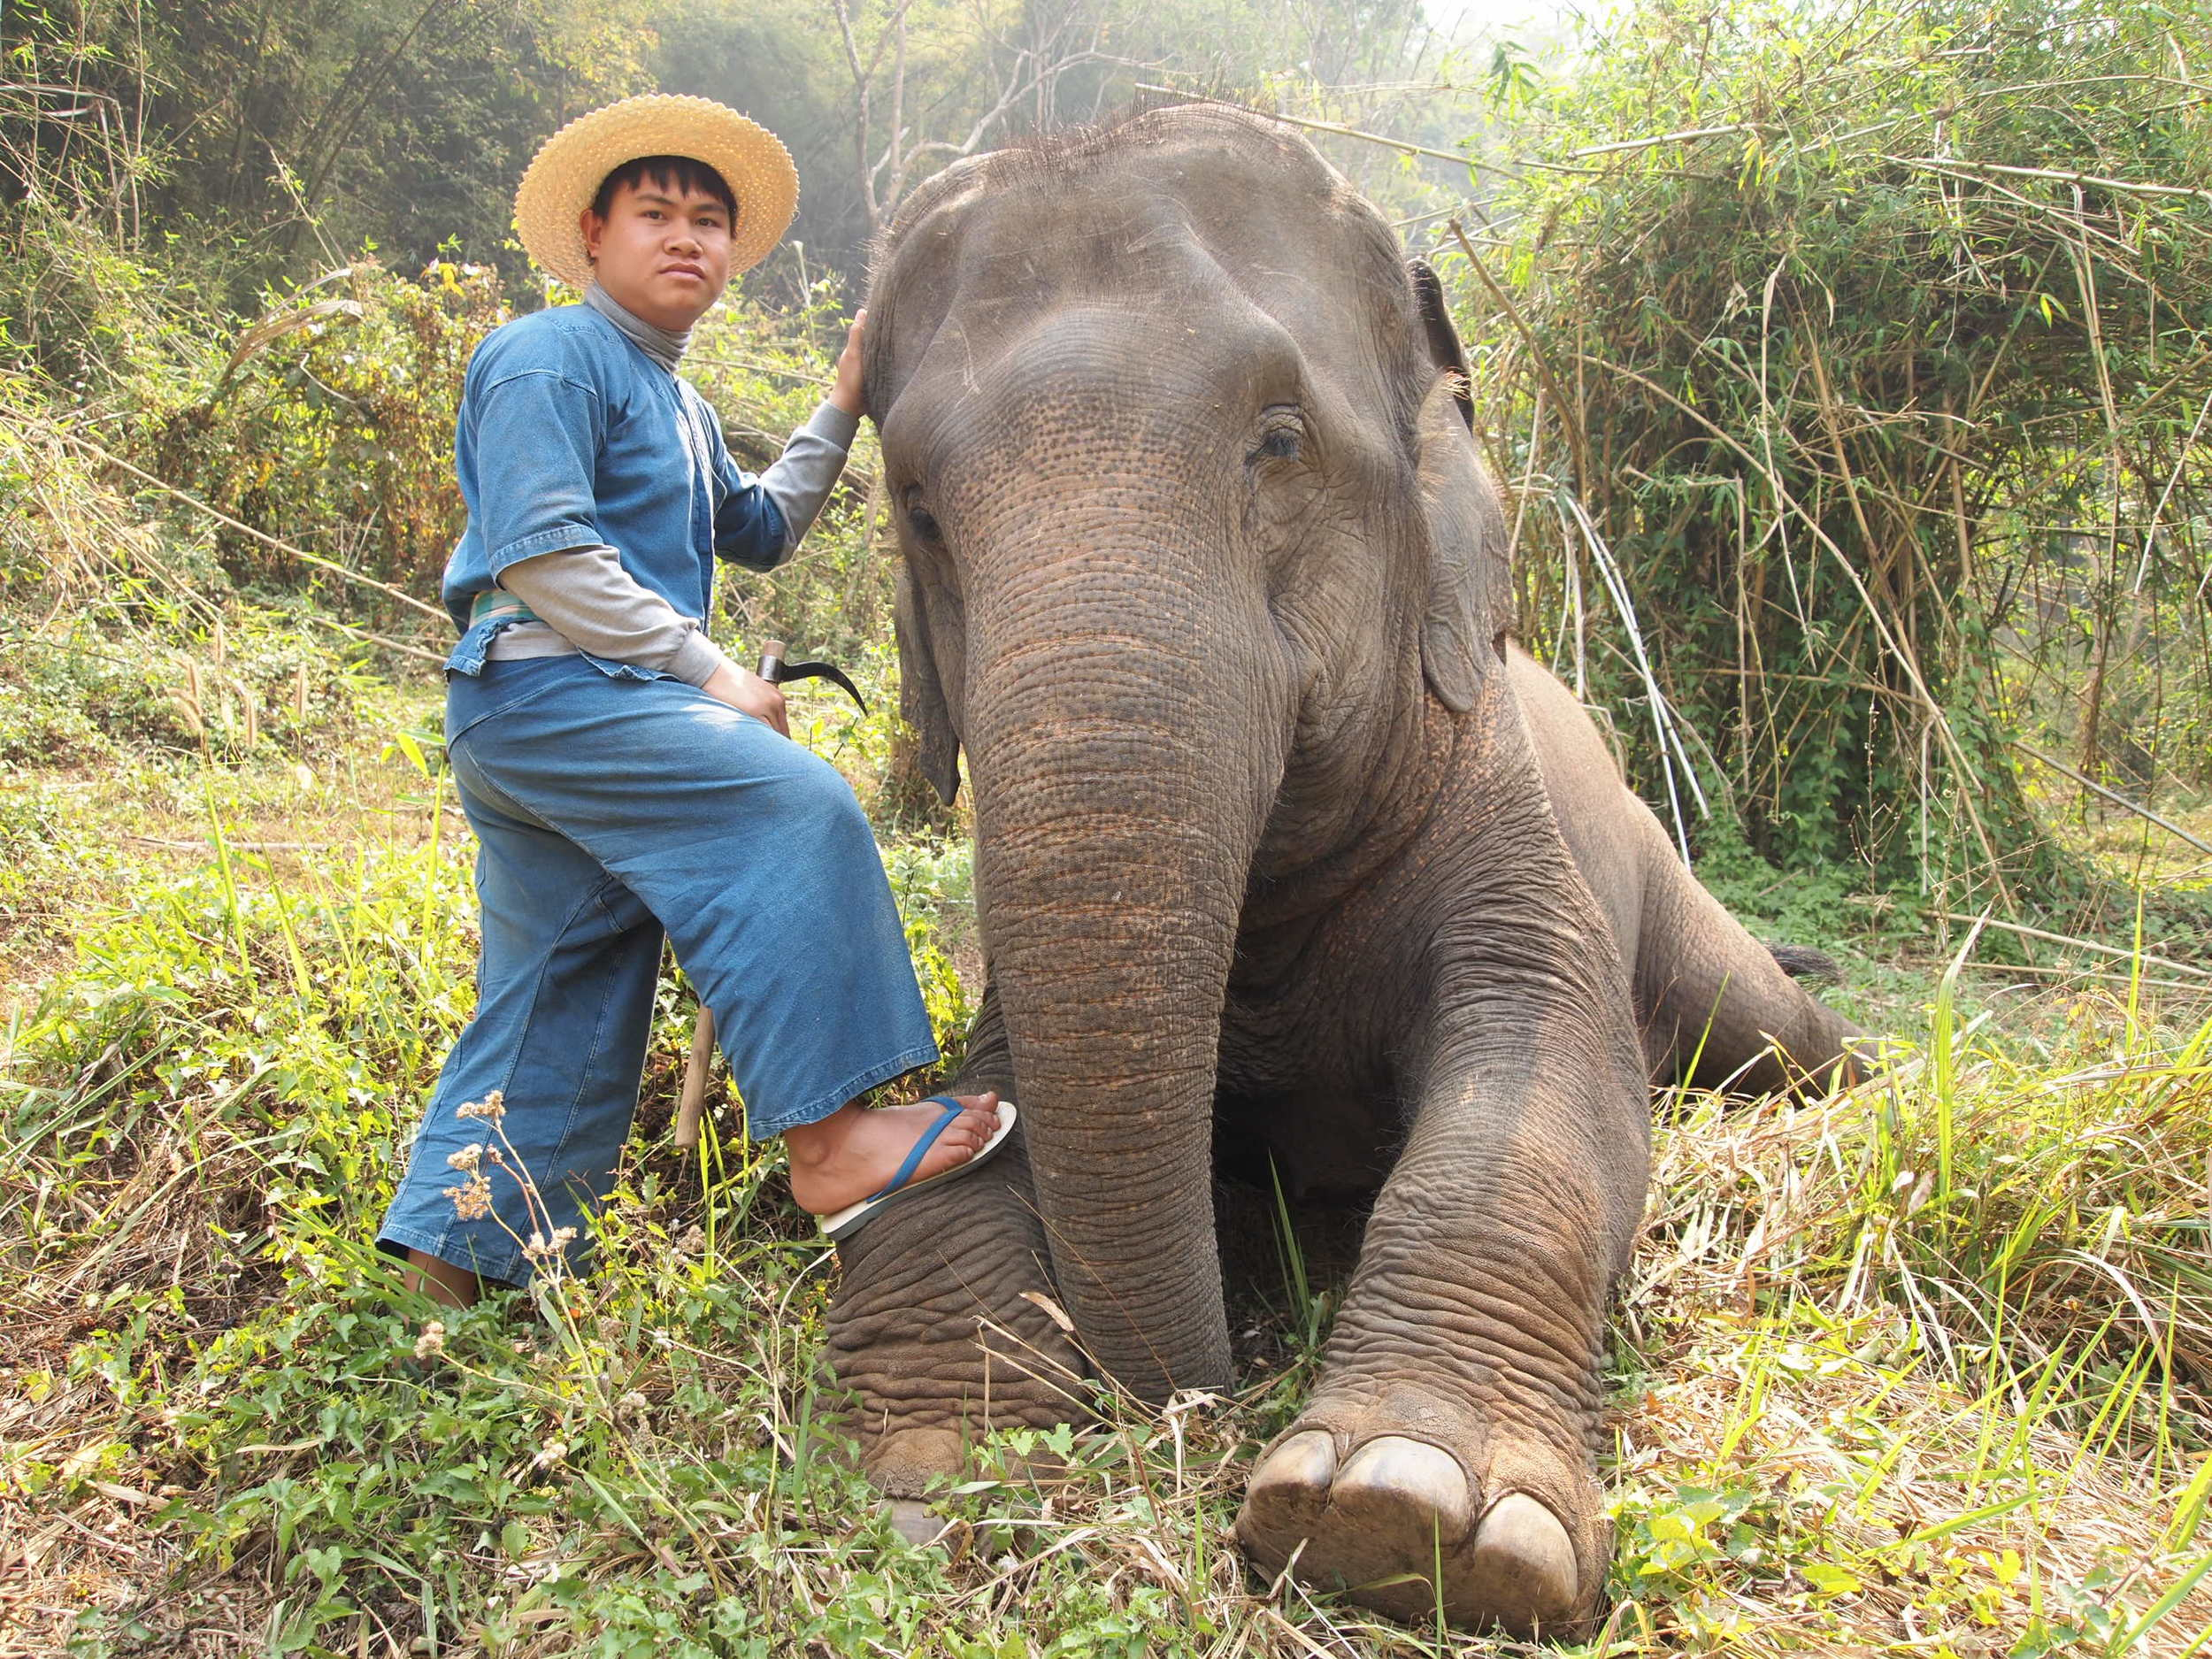 Thailand. My elephant and his mahout {elephant handler} at the Four Seasons Tented Camp Golden Triangle.